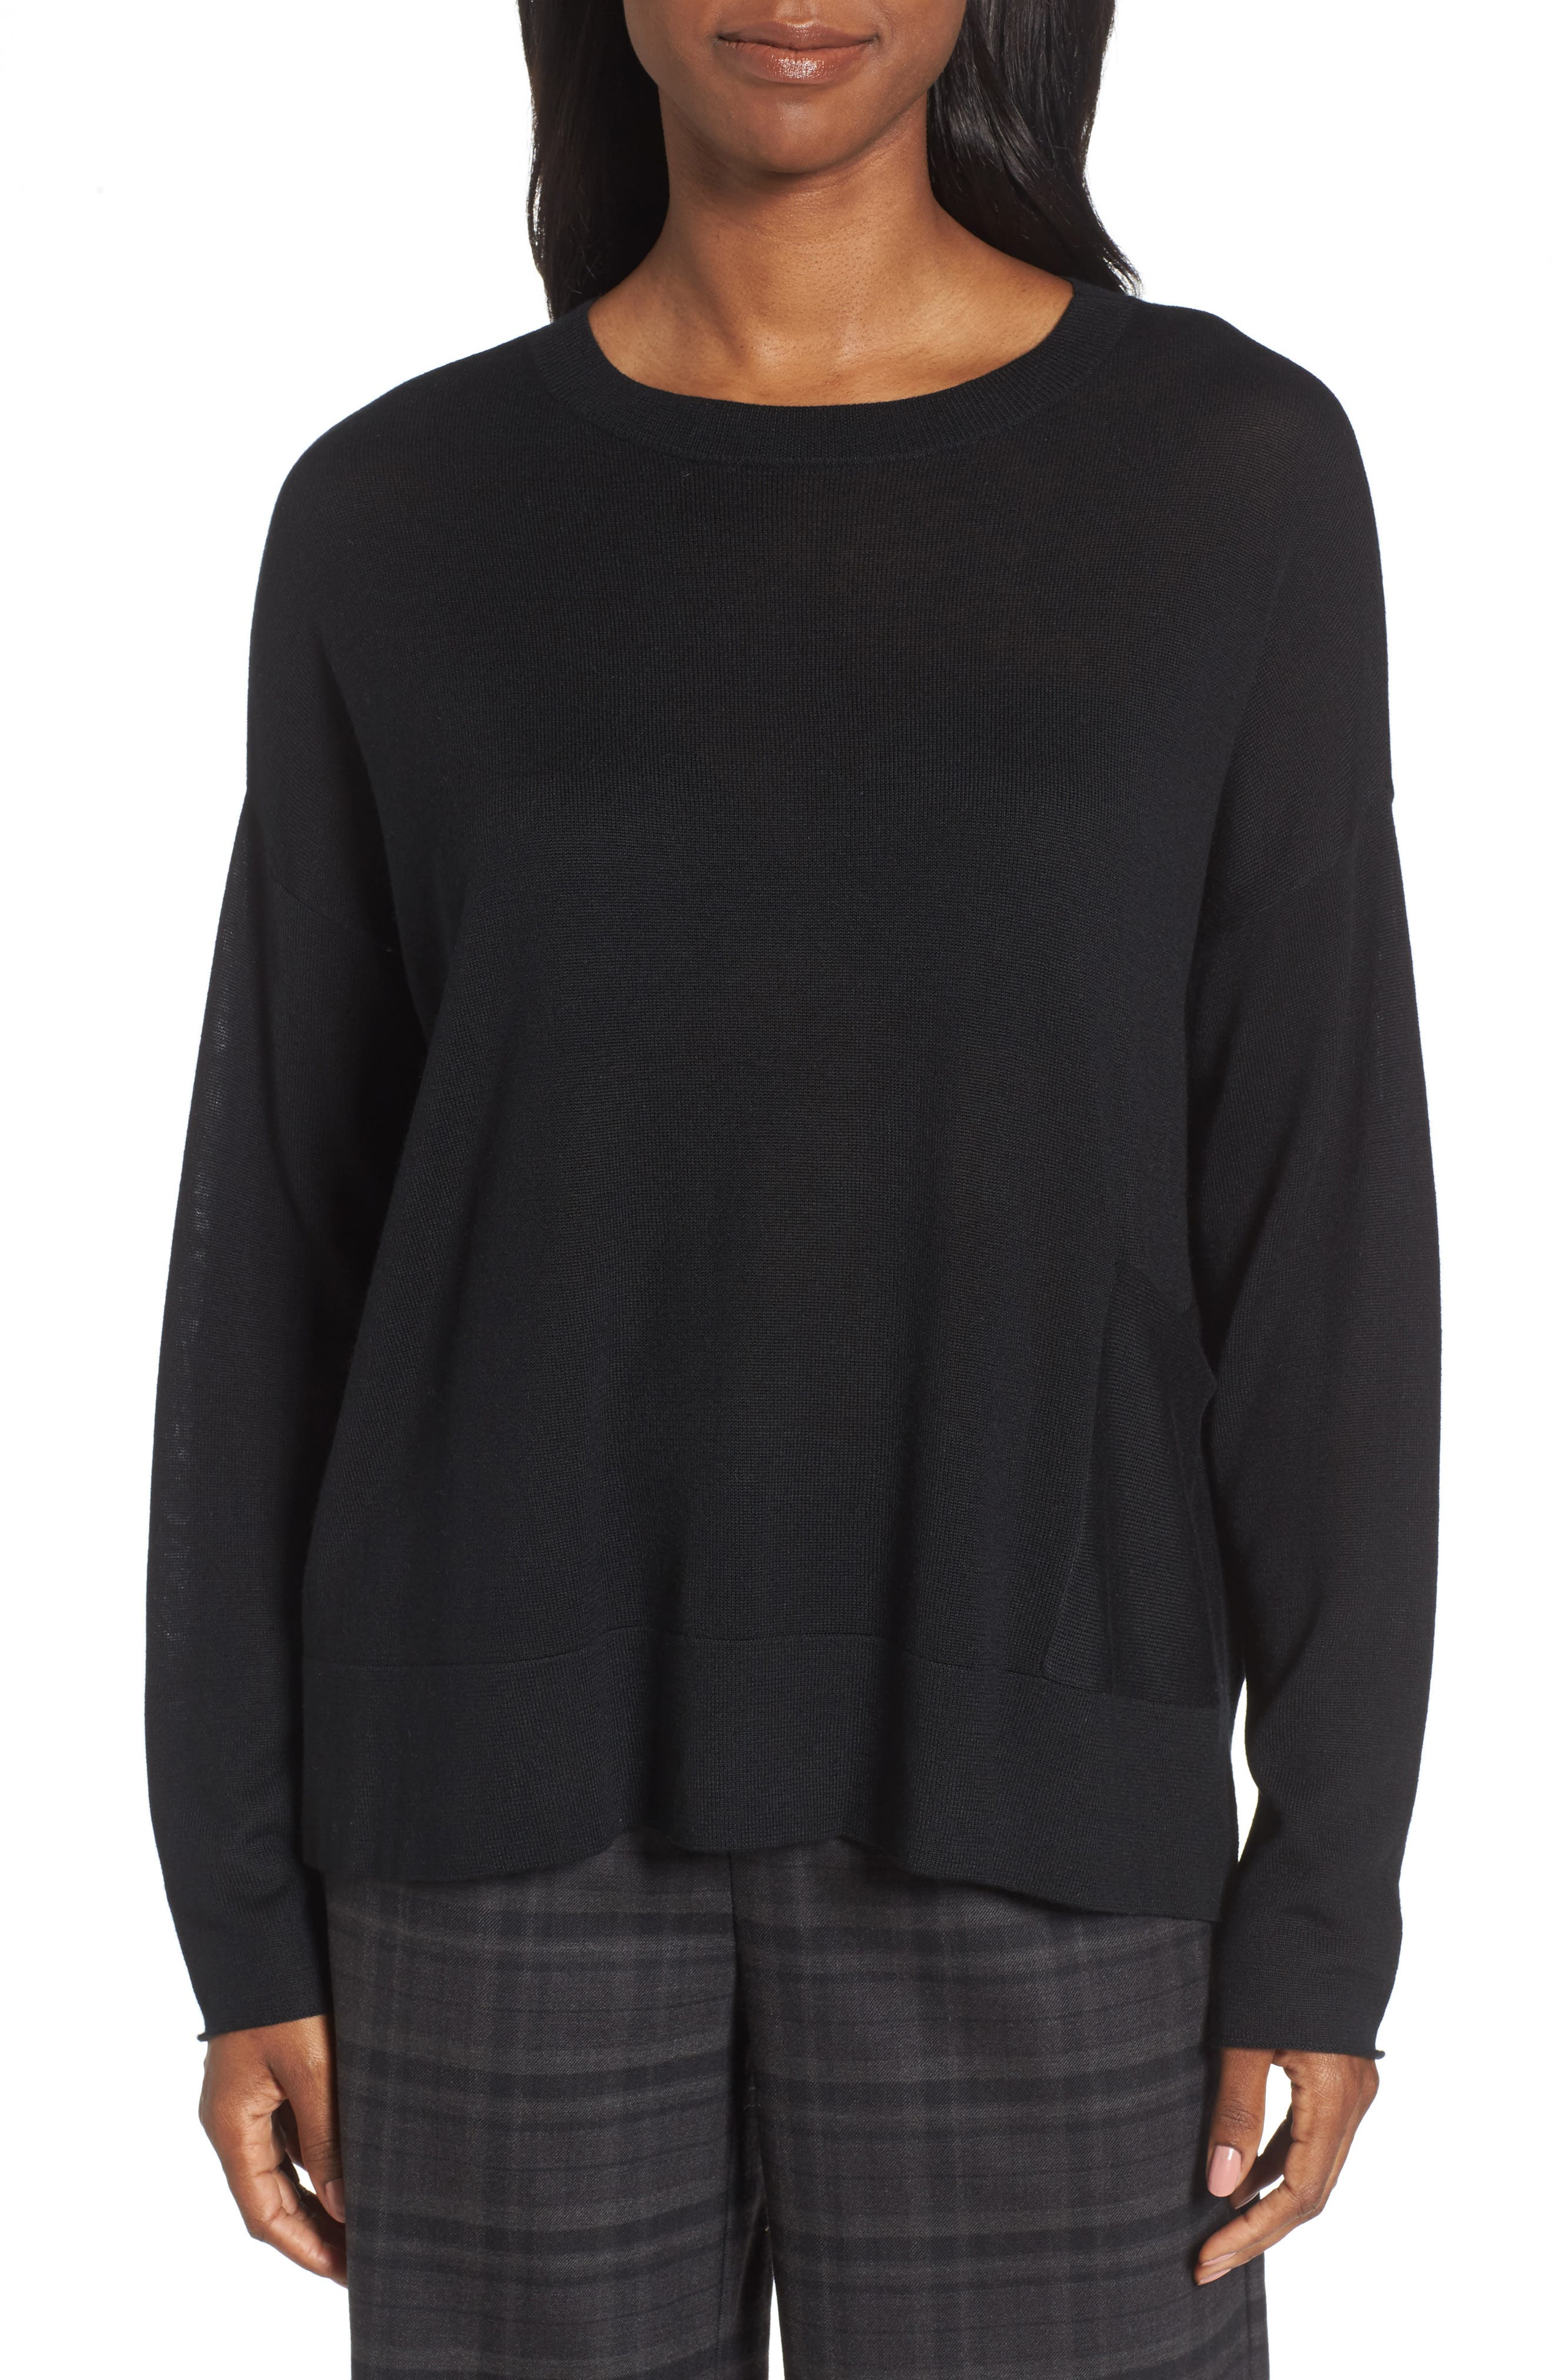 Tencel<sup>®</sup> Blend Sweater,                         Main,                         color, 001